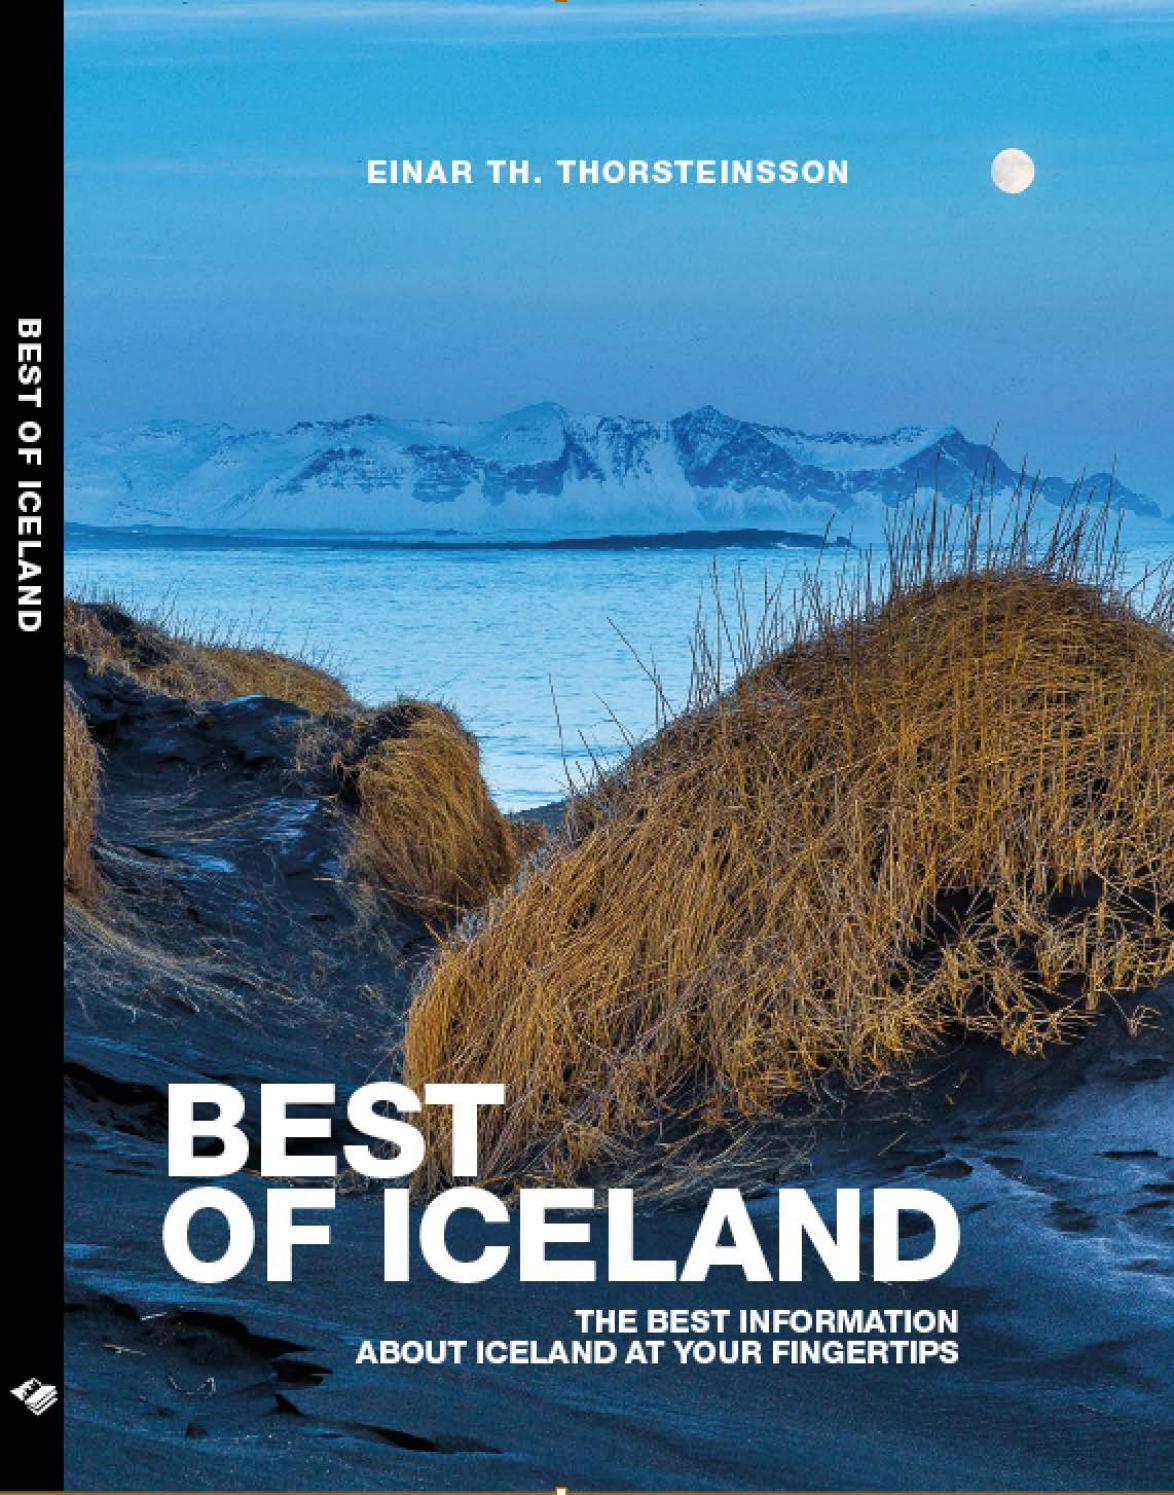 01f5af47f86 Best of Iceland extra by Icelandic Times - issuu